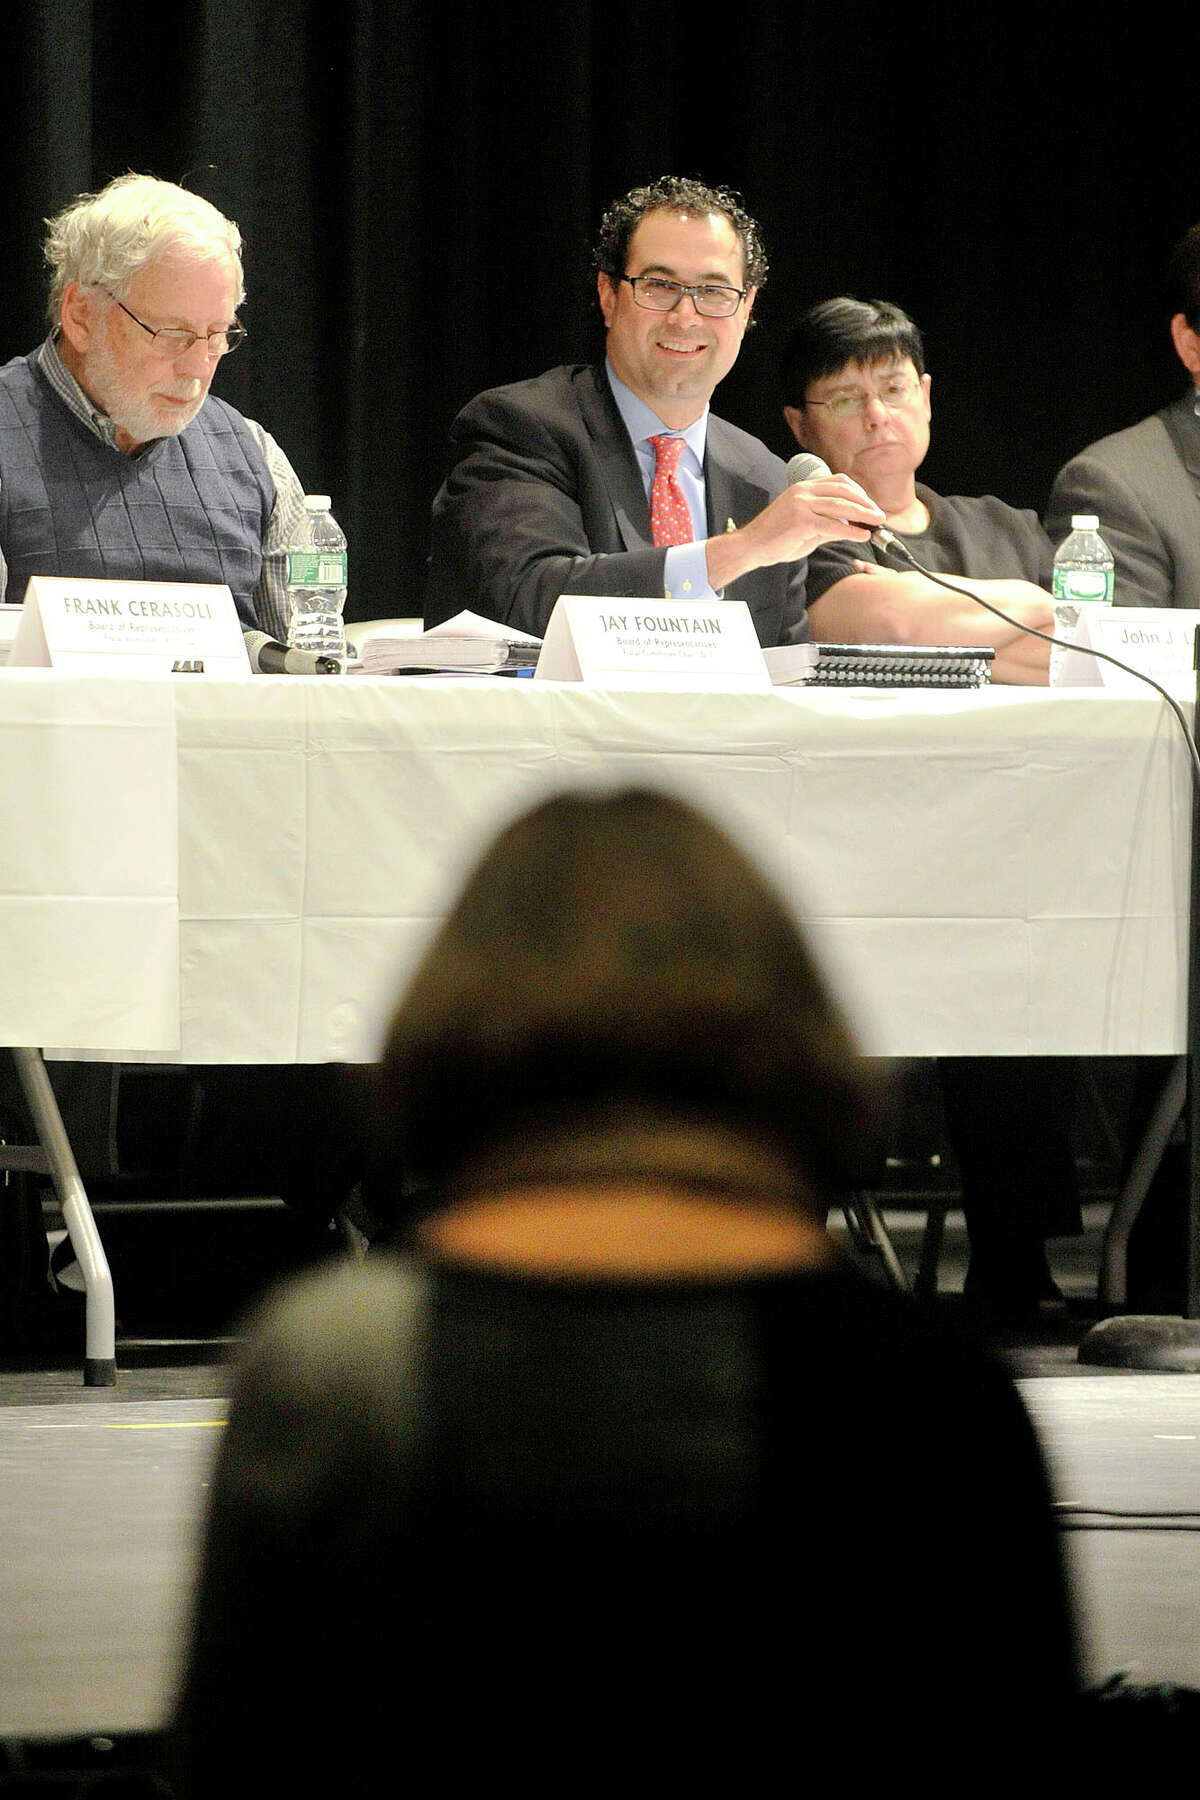 Deborah Golden, foreground, speaks as John Louizos, chairman of the Board of Finance, grabs the microphone during the public hearing on Mayor David Martin's proposed budget before the Board of Finance and Board of Representatives at Westhill High School in Stamford, Conn., on Thursday, March 27, 2014.